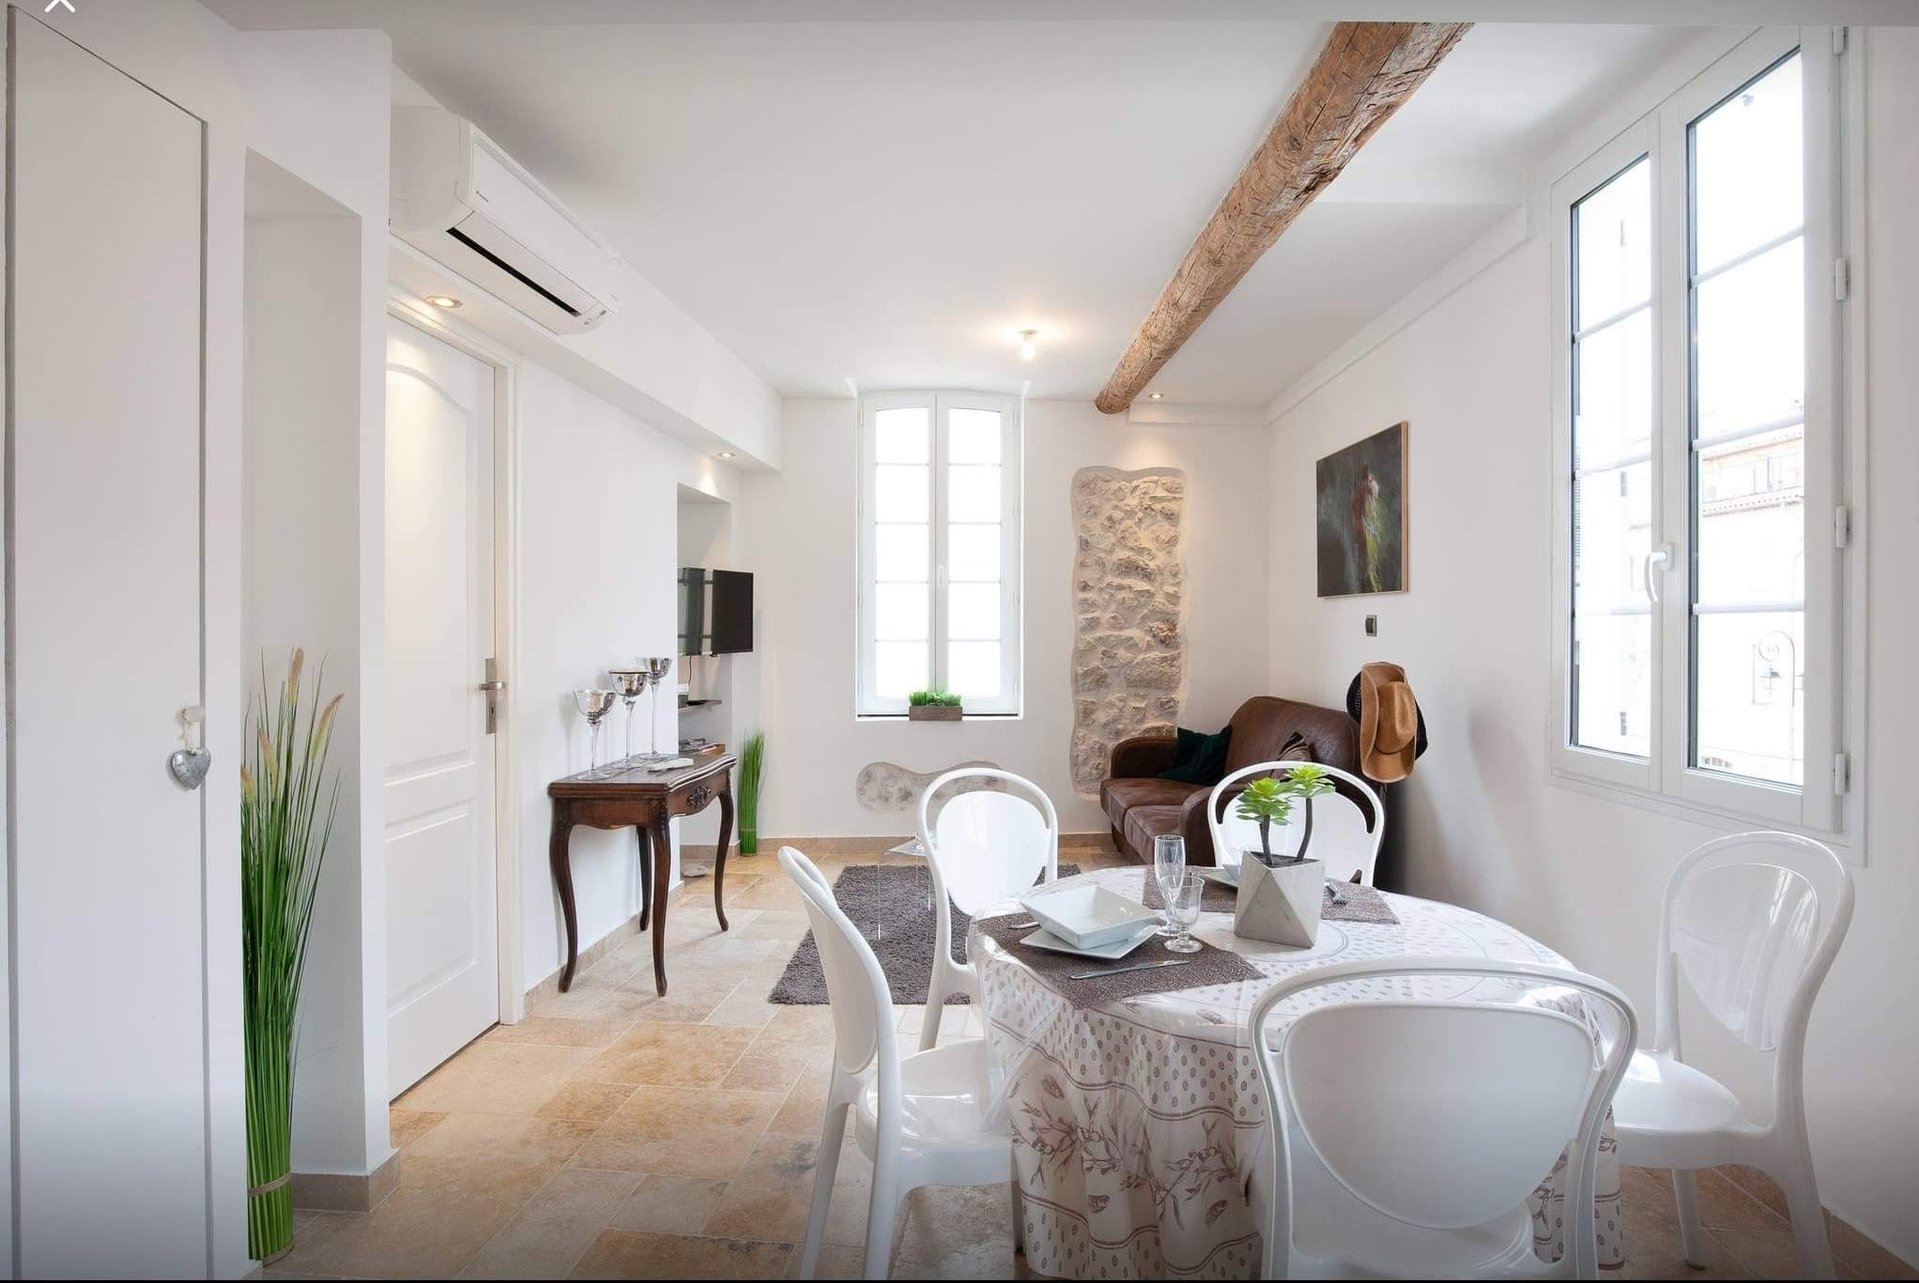 One bedroom apartment in the old town of Antibes